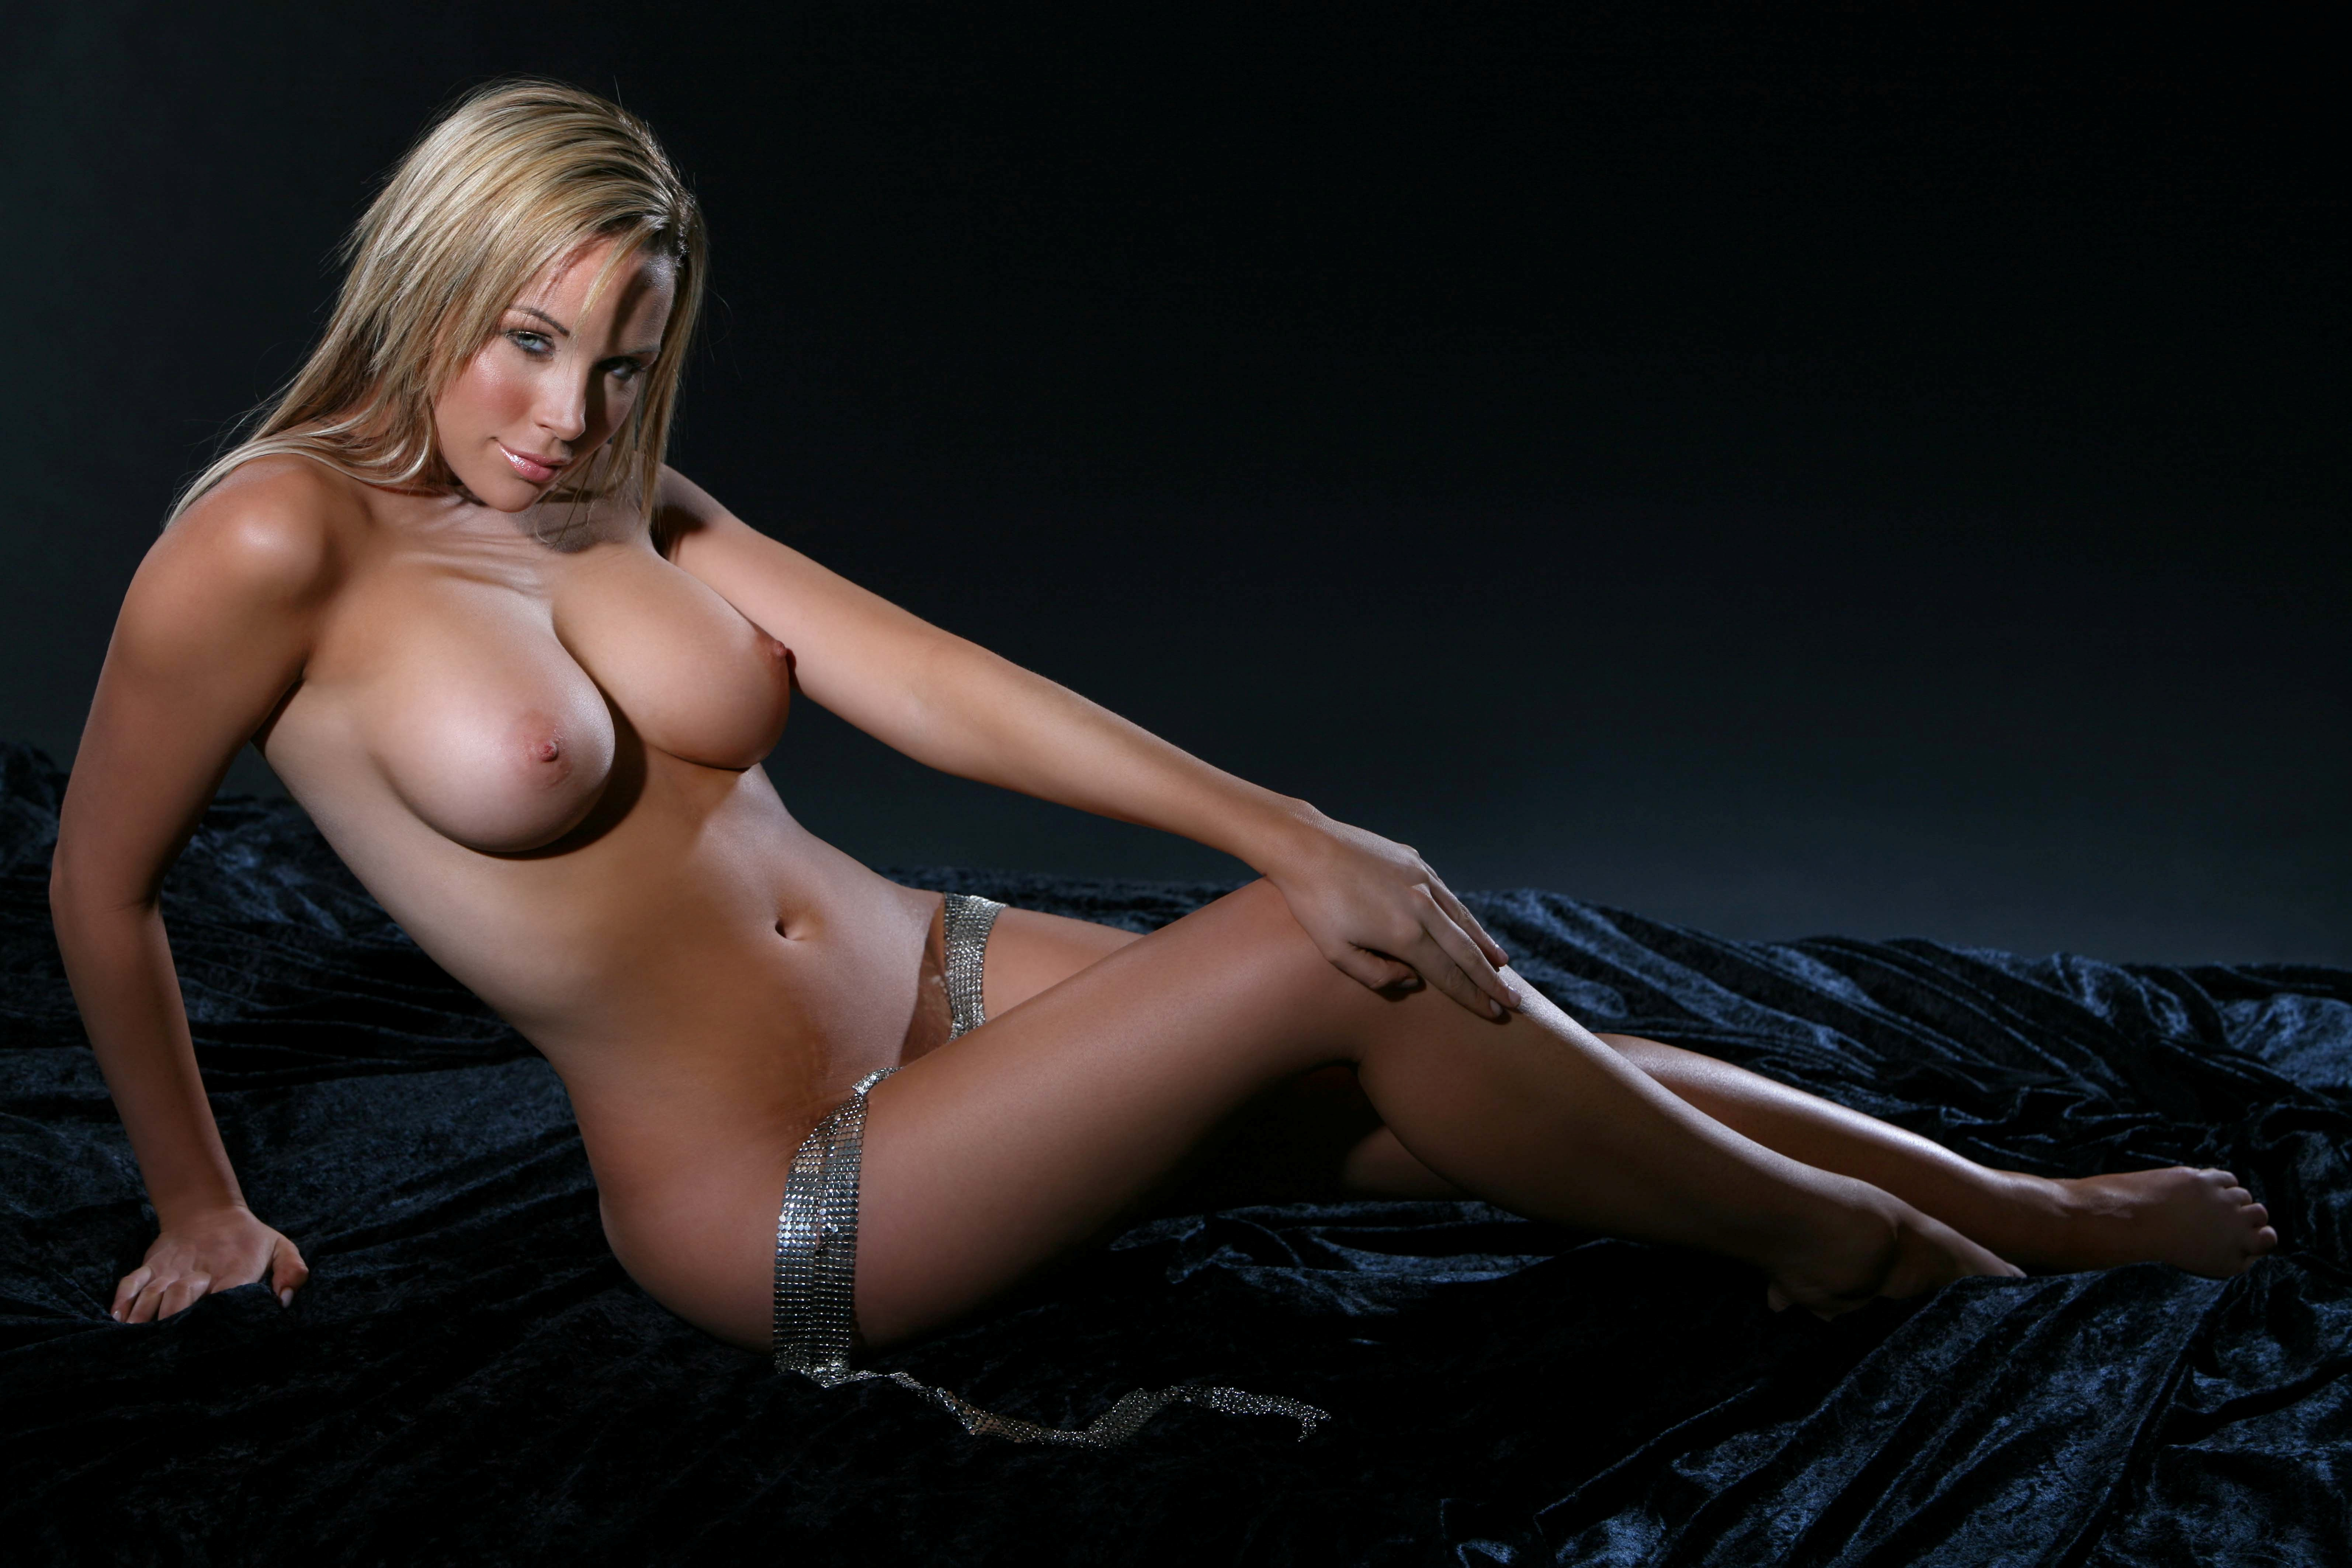 Hot girl naked dancing